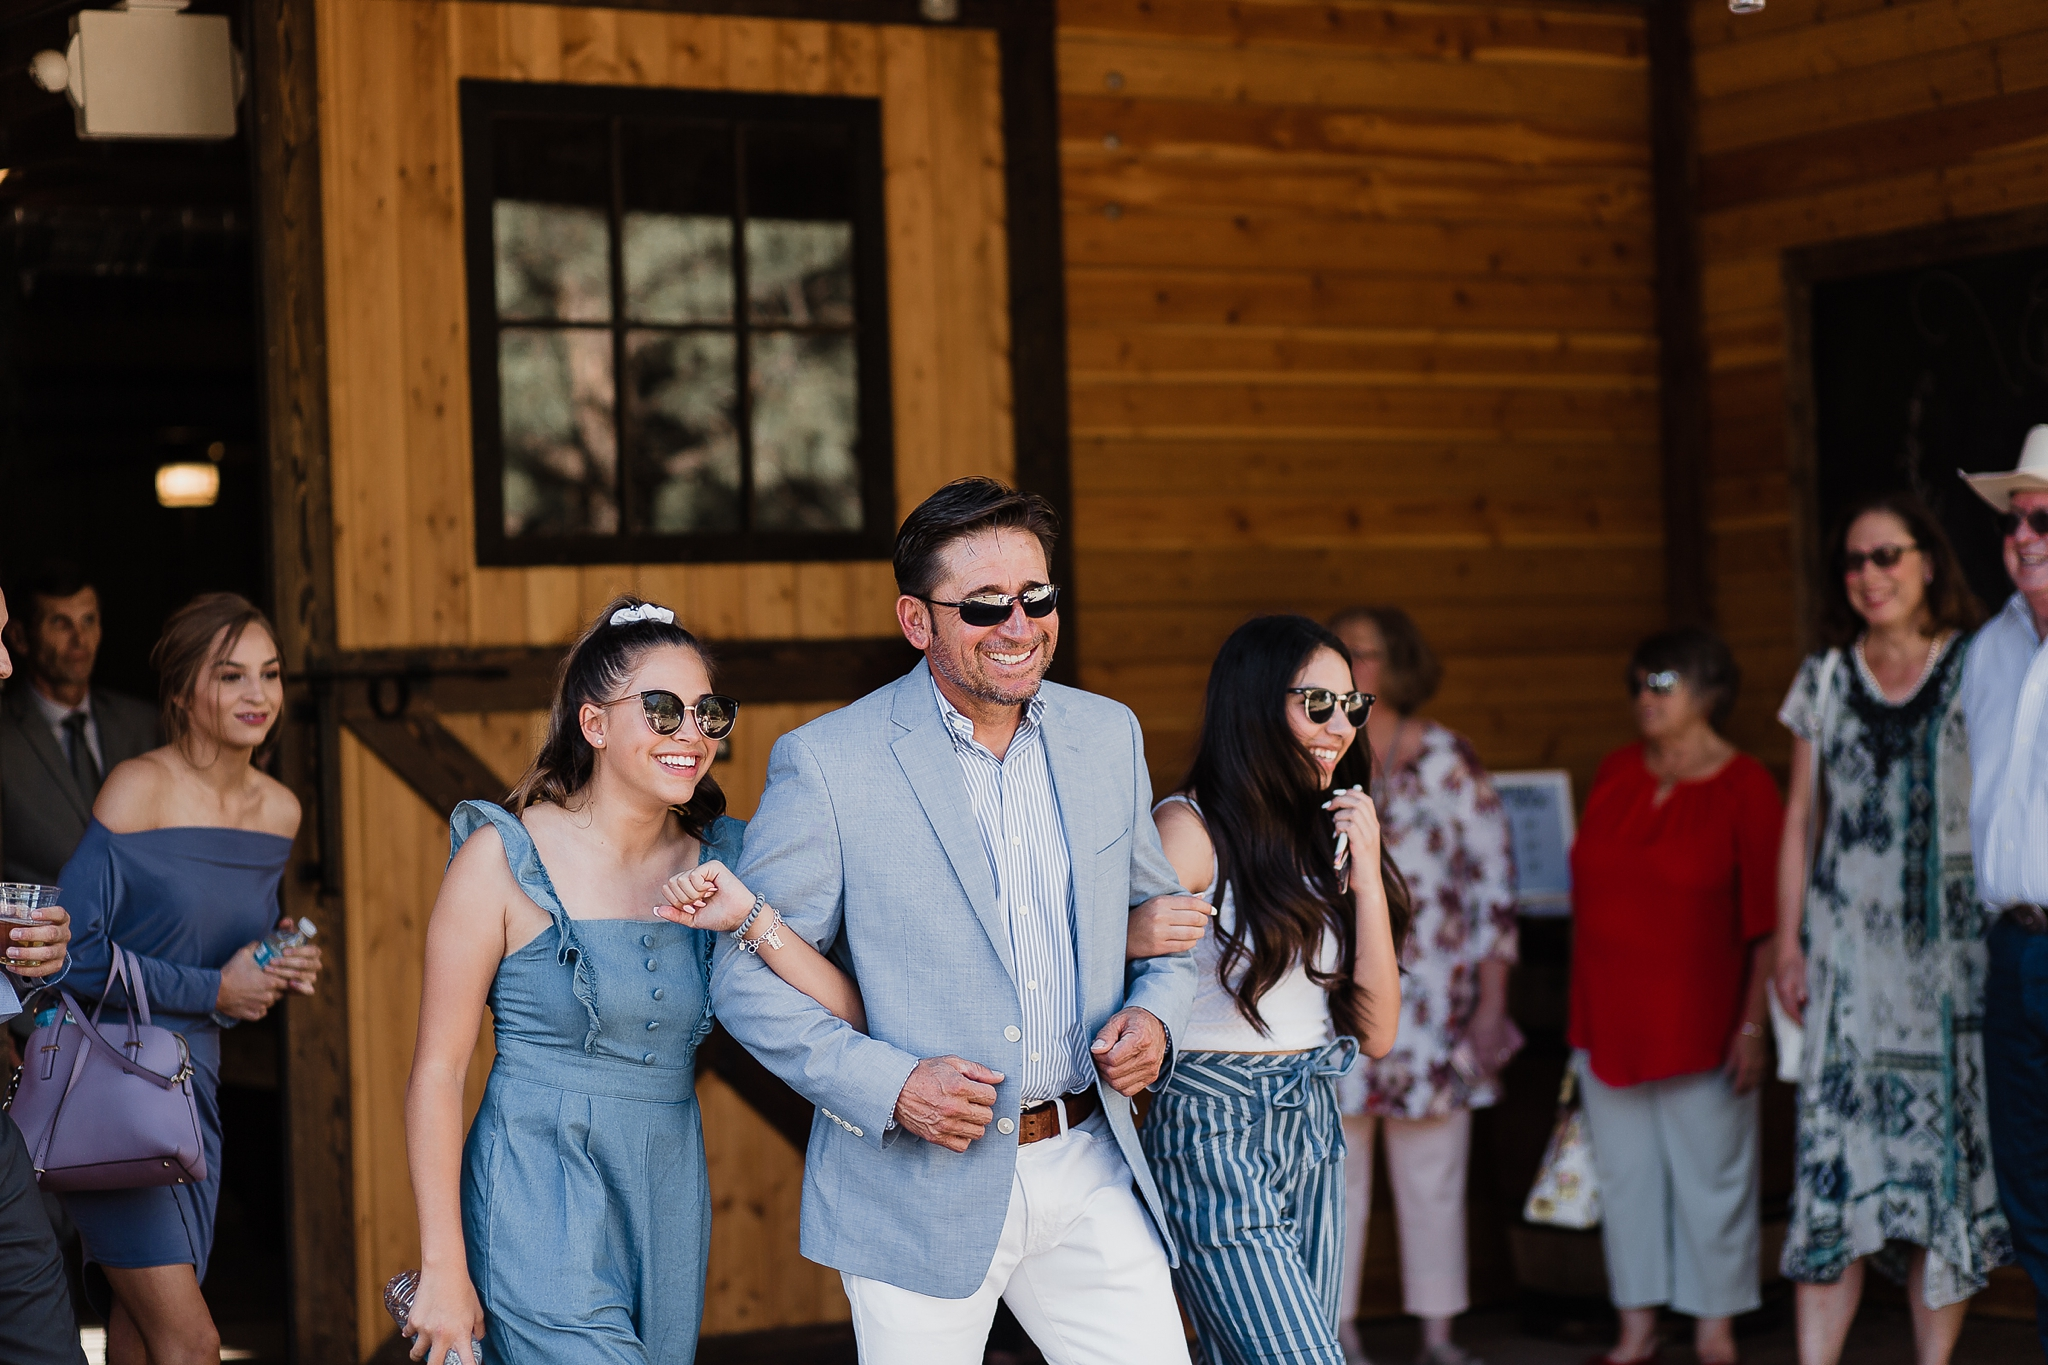 Alicia+lucia+photography+-+albuquerque+wedding+photographer+-+santa+fe+wedding+photography+-+new+mexico+wedding+photographer+-+new+mexico+wedding+-+new+mexico+wedding+-+barn+wedding+-+enchanted+vine+barn+wedding+-+ruidoso+wedding_0085.jpg